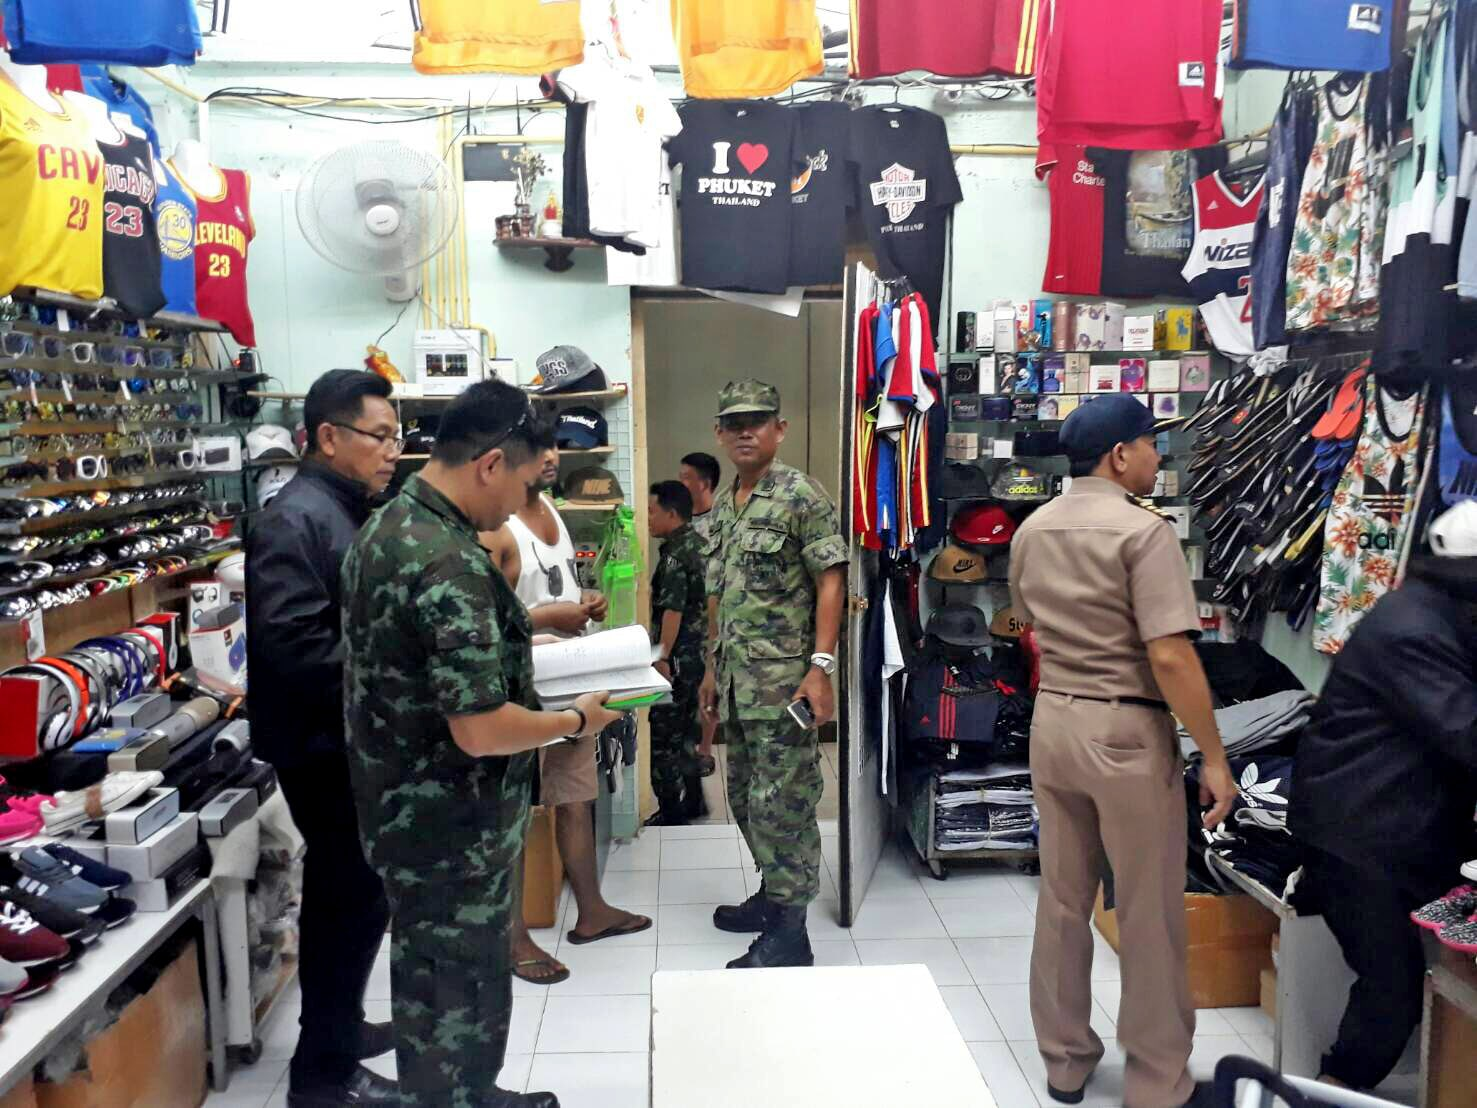 3,000 items snared in Patong counterfeit crackdown | The Thaiger